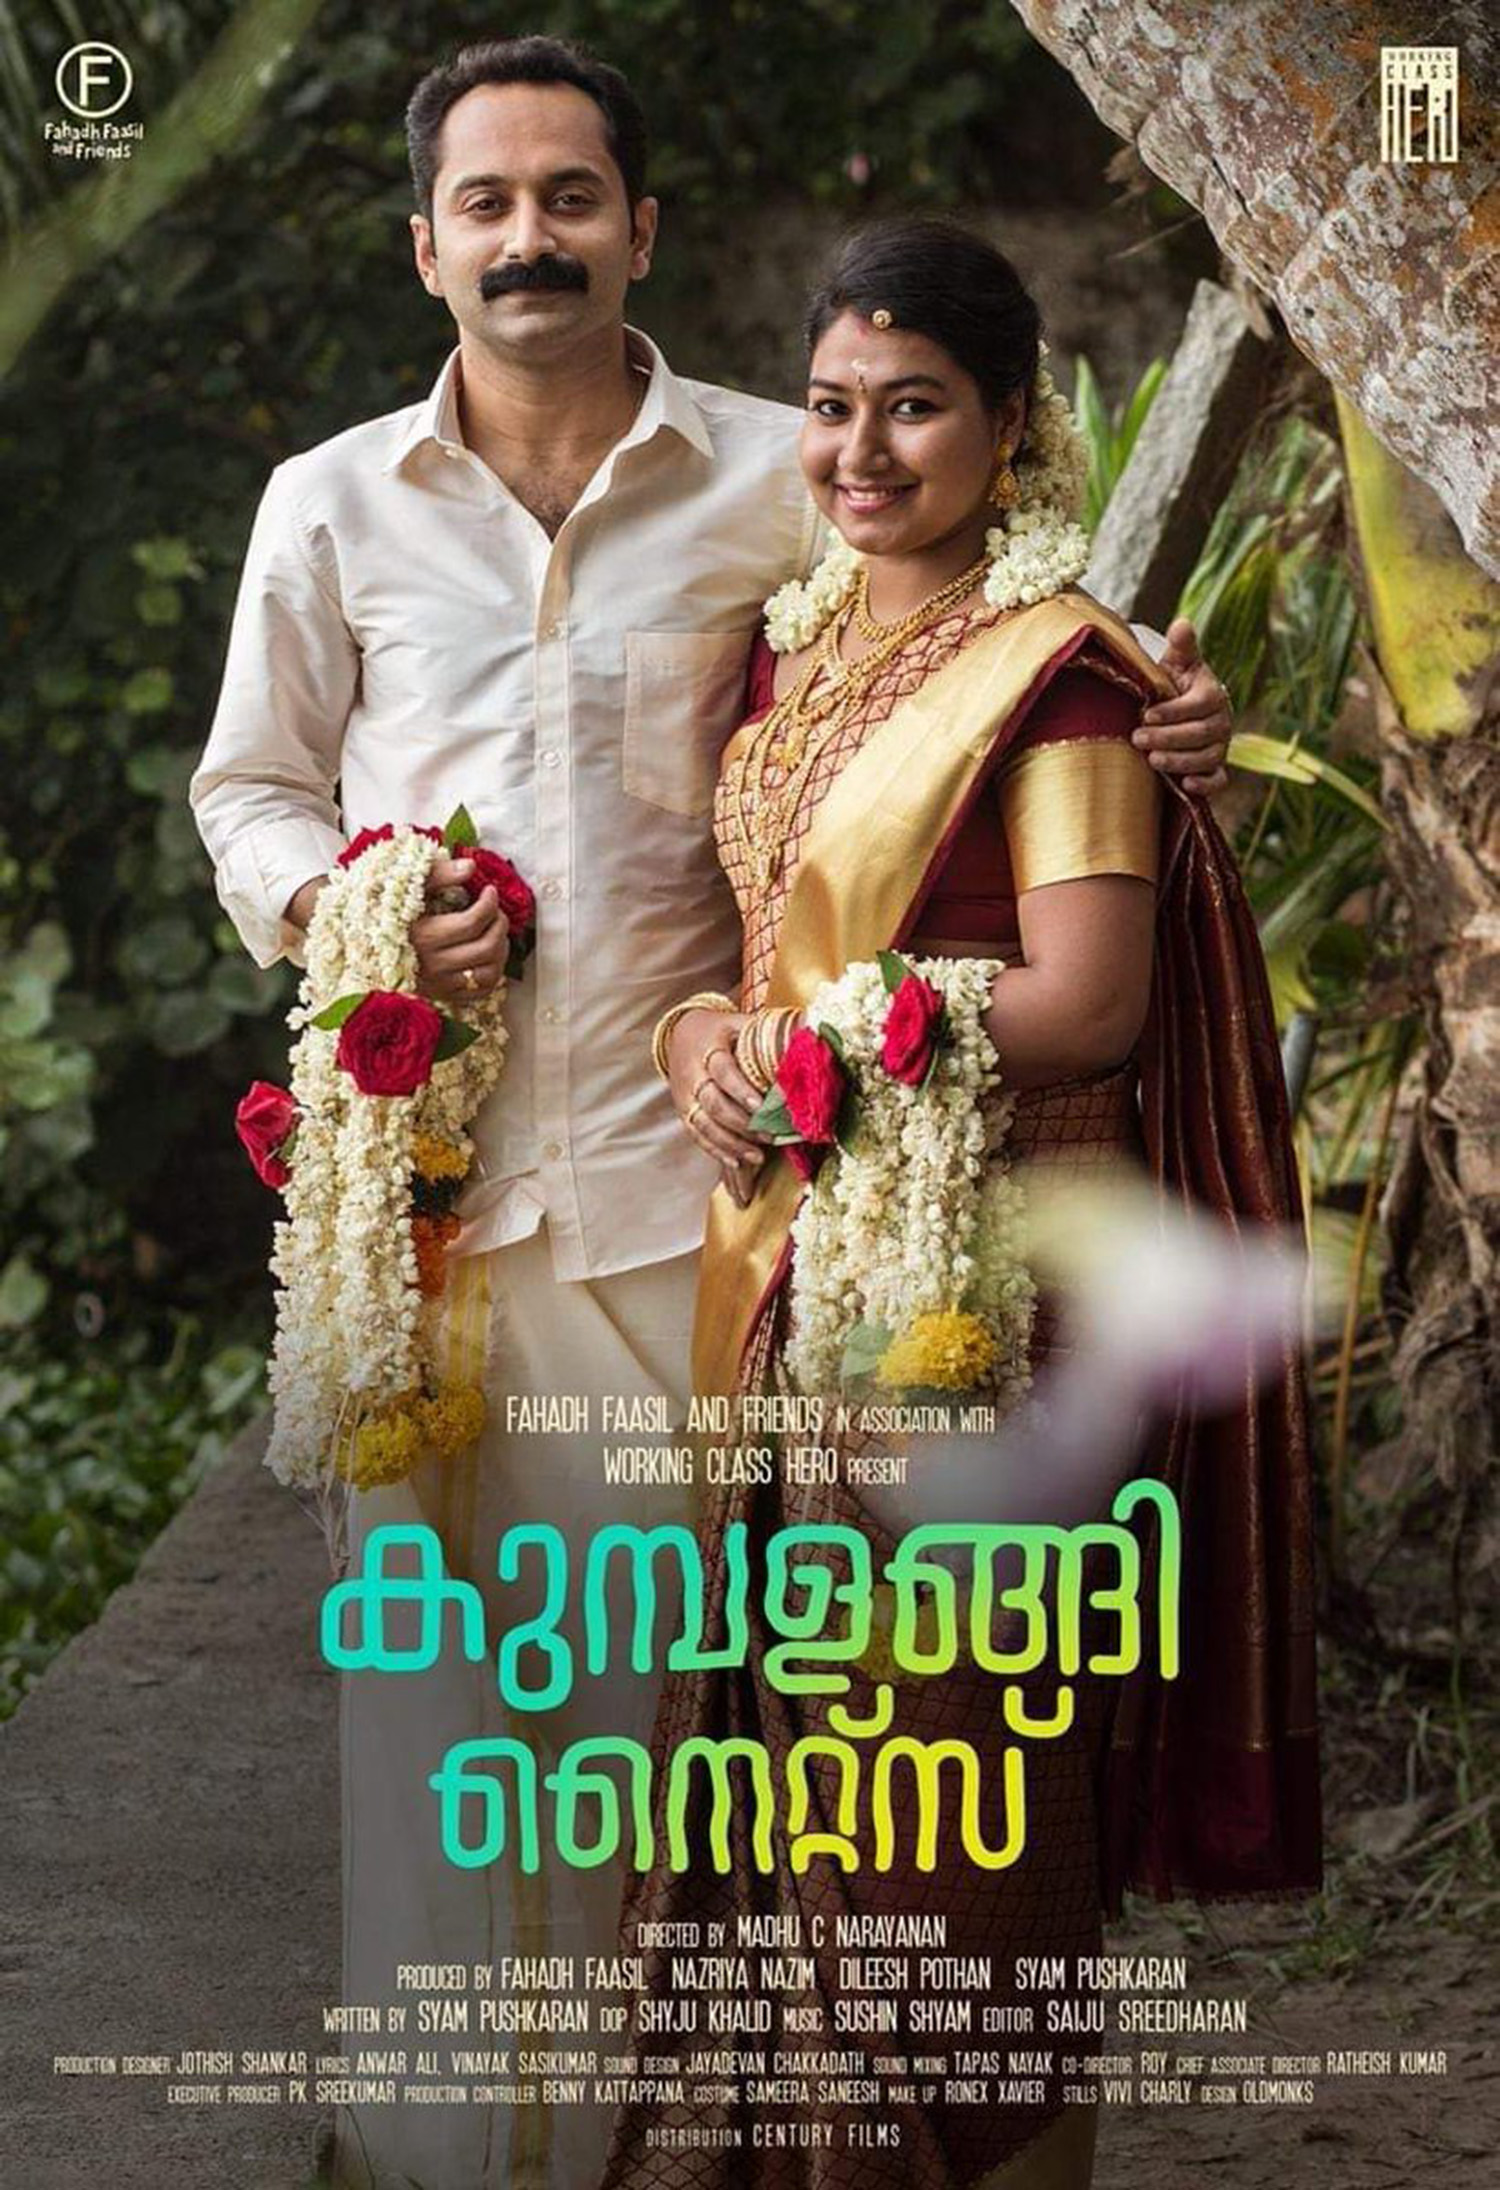 Kumbalangi Nights,Kumbalangi Nights posters,fahadh faasil,fahadh faasil in Kumbalangi Nights,Kumbalangi Nights fahadh faasil's stills photos,Kumbalangi Nights latest poster,Kumbalangi Nights new poster,Kumbalangi Nights malayalam movie,Kumbalangi Nights movie